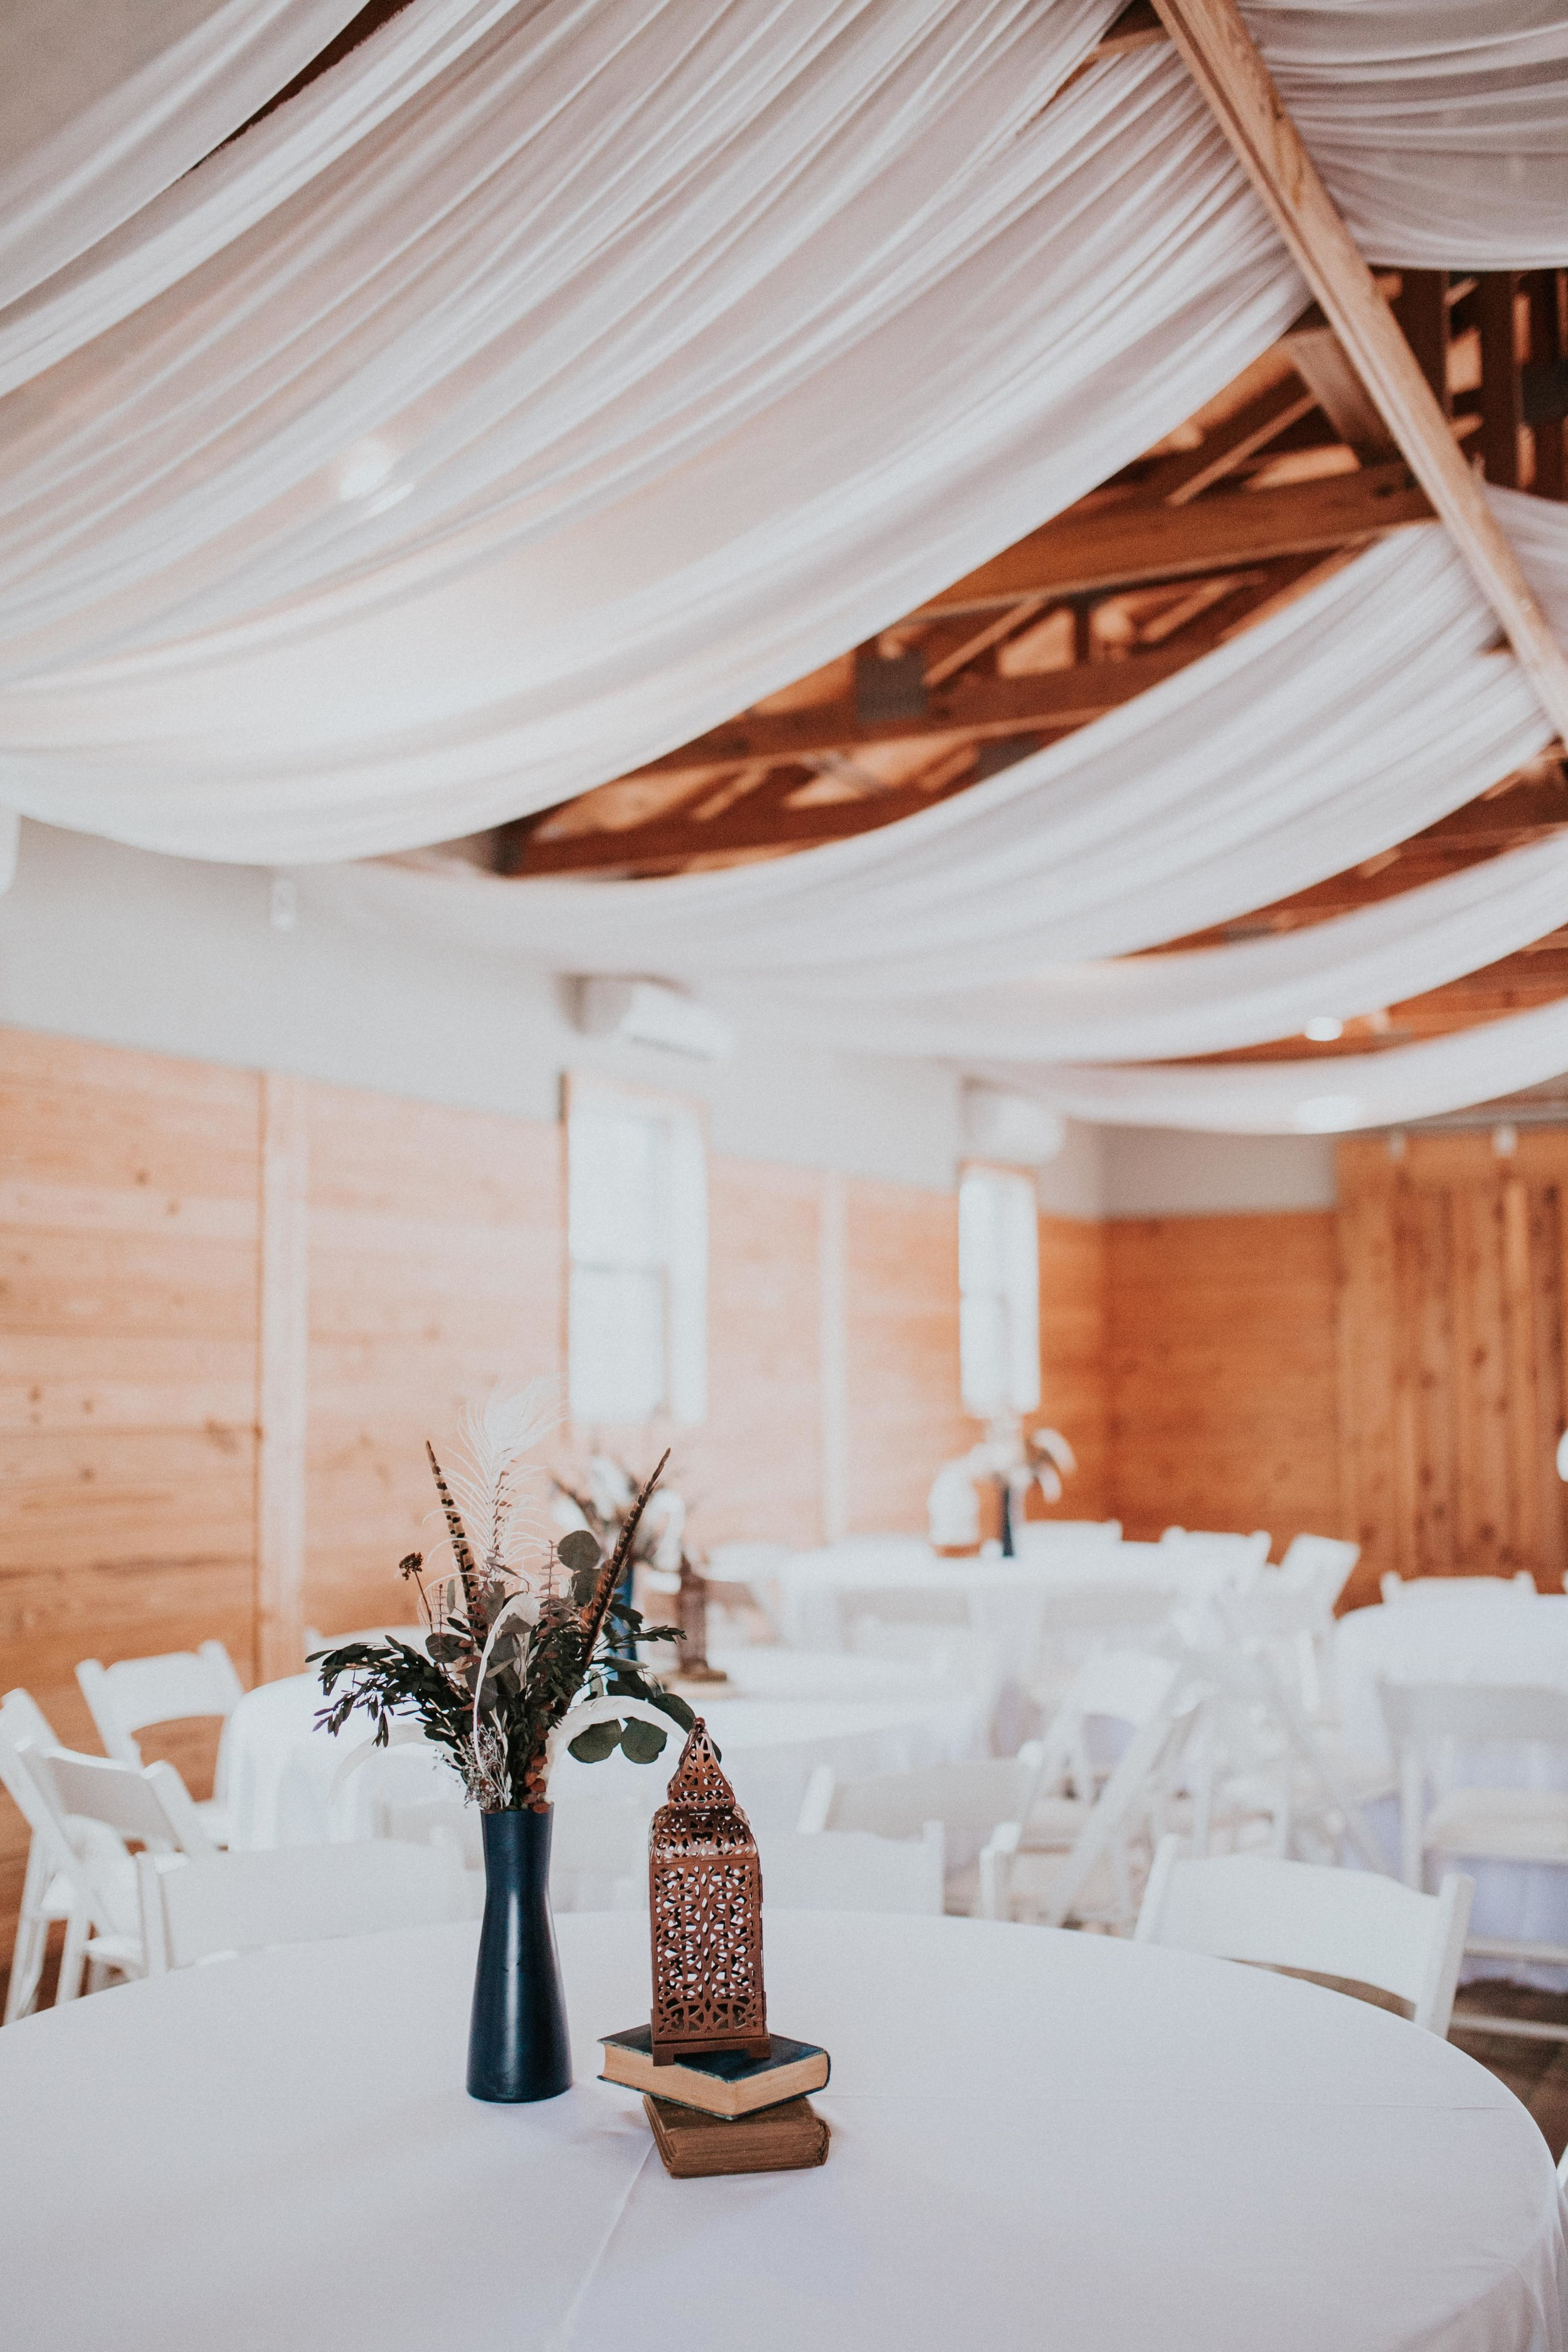 Vow Renewal in Magnolia Texas - Madeleine Frost Wedding Photographer - Sized for Blog-6.jpg